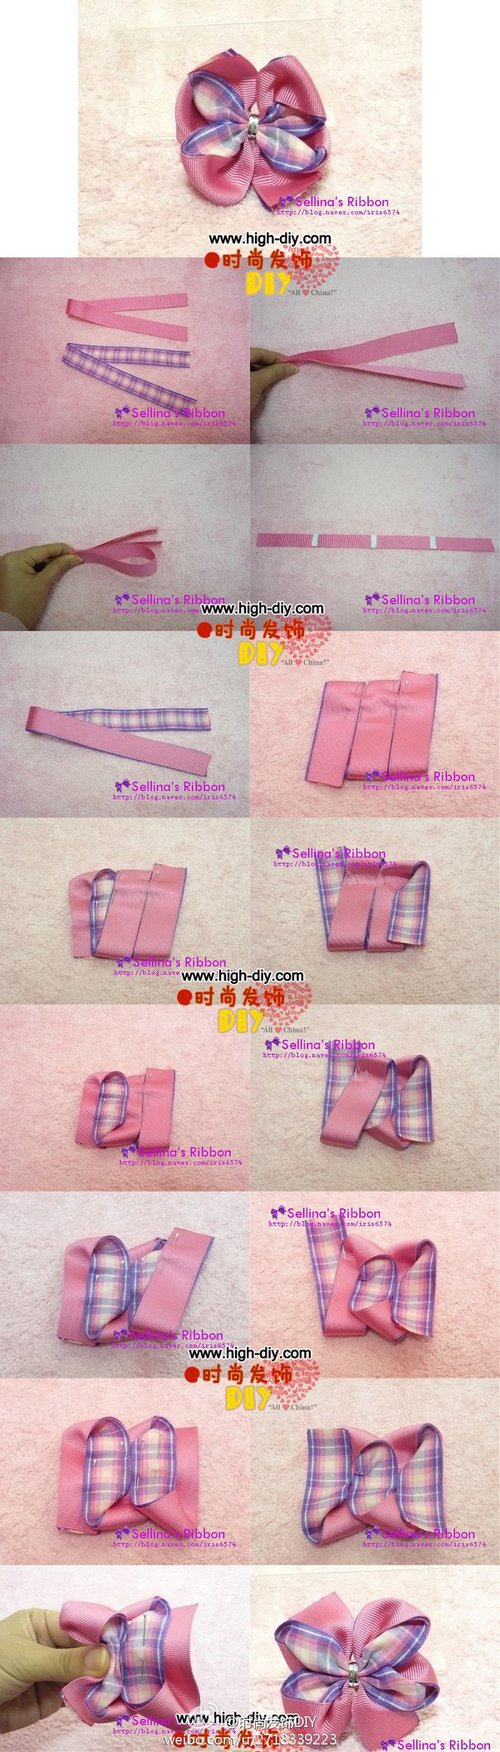 Diy-ordinary-ribbon-flower_large